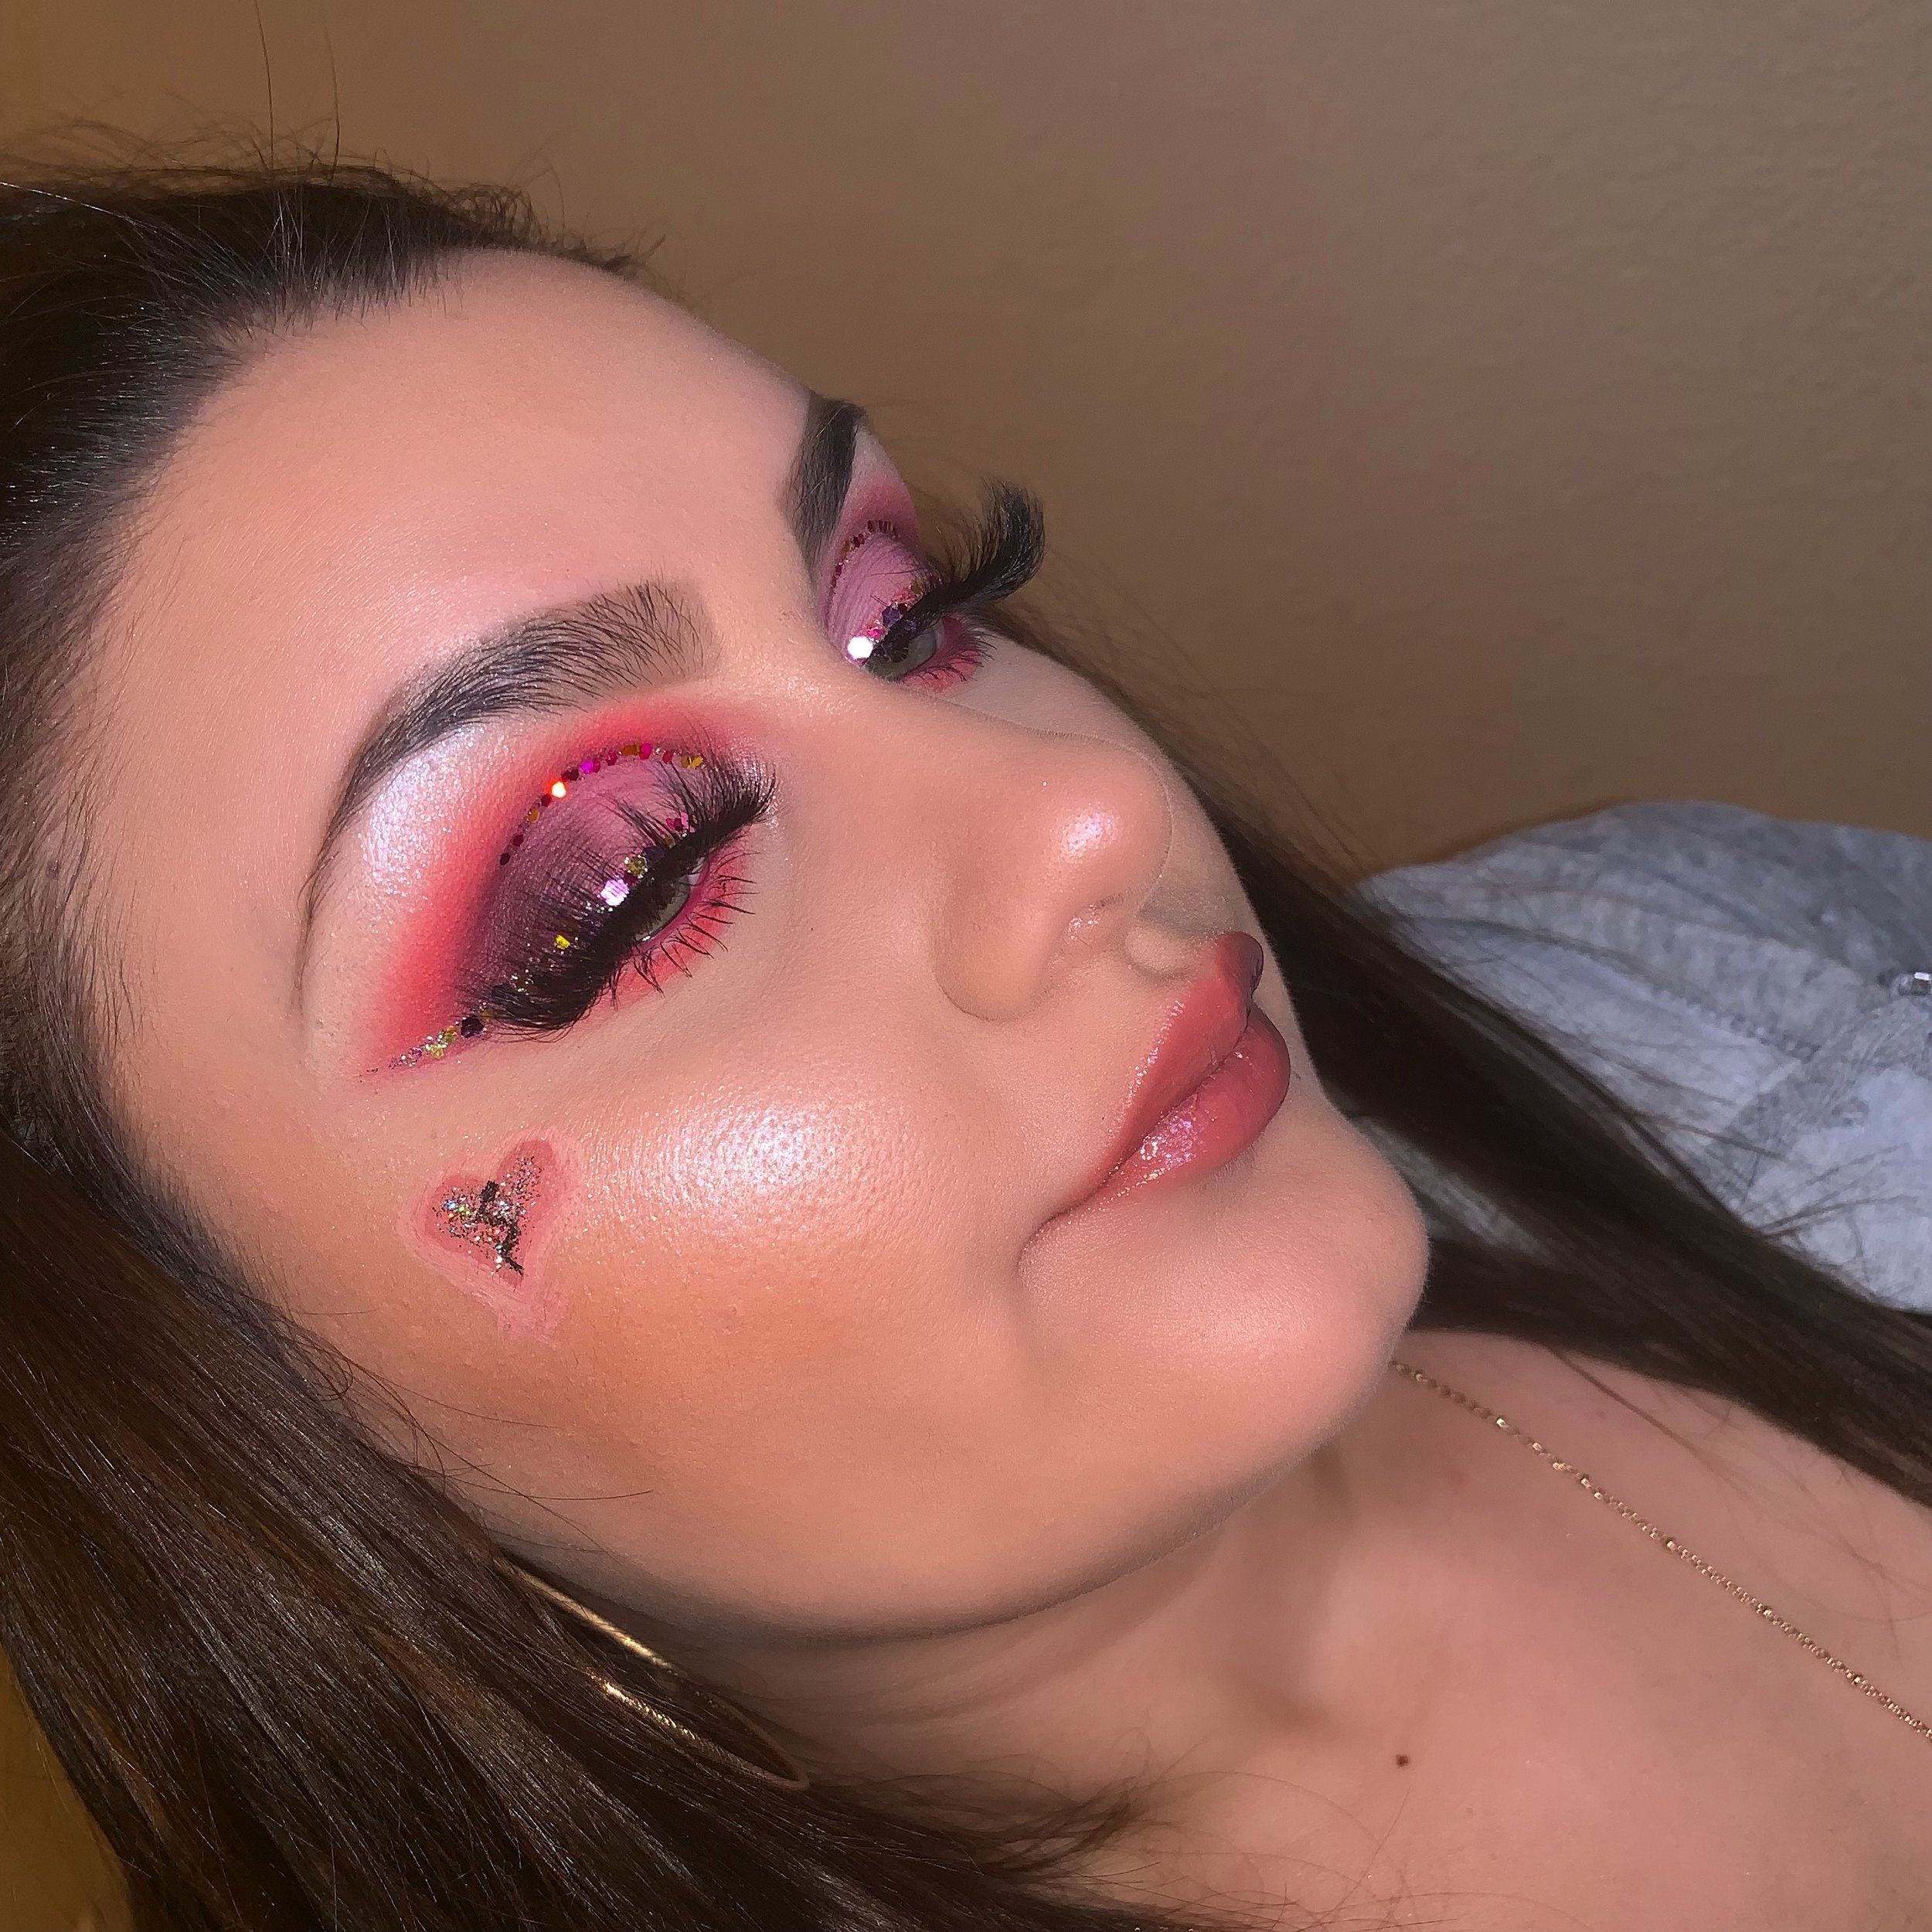 """@glambycece_18 - Discount Code:""""cece""""Hey! My names Cierra but everyone calls me CECE ! I've always been into makeup, but I recently started my IG with all my looks almost a year ago. All my family and friends would always tell me to make an IG so they could check out my work. So I finally did it and I'm blessed with the opportunity's I've gotten from starting! I can't wait to see what else is in store for me and Being apart of Midas team! I couldn't be happier ❤️-Cece"""